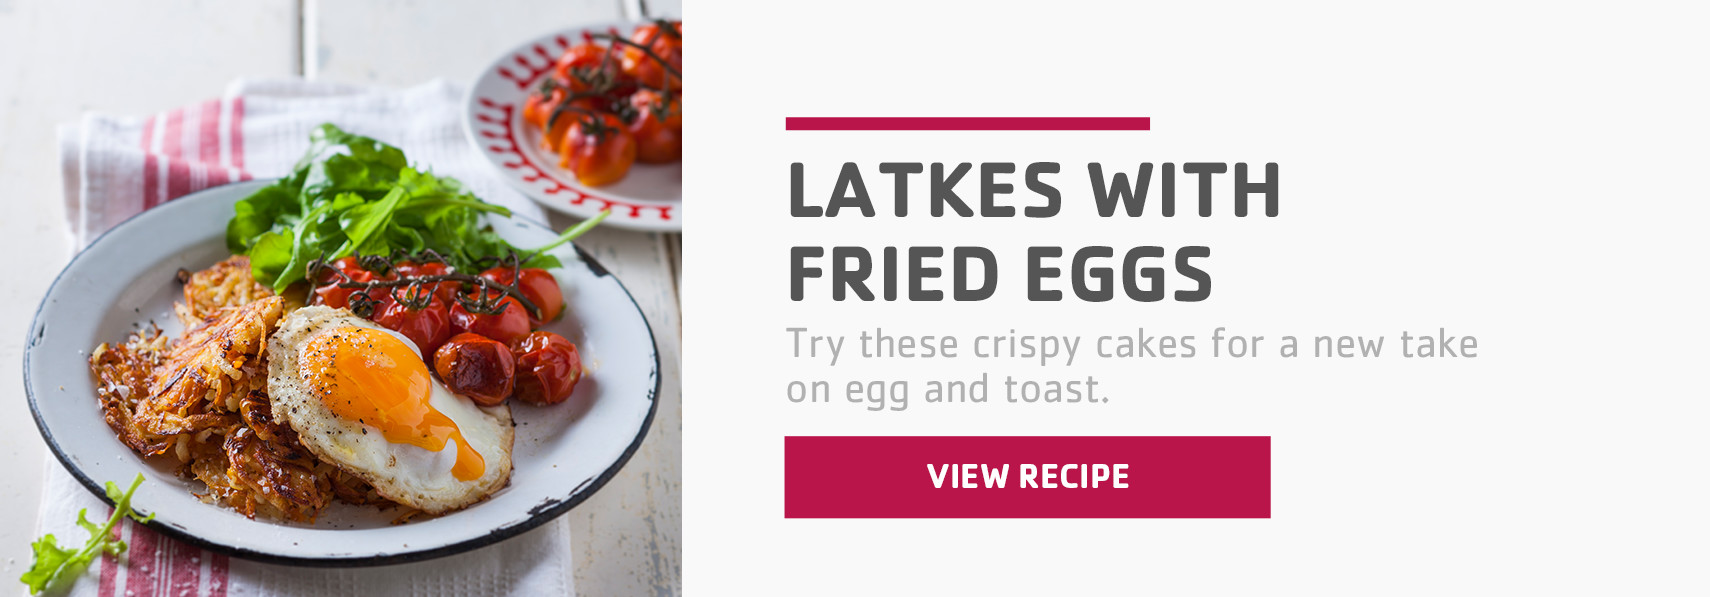 04_Lunchbox-Latkes_with_fried_eggs.jpg